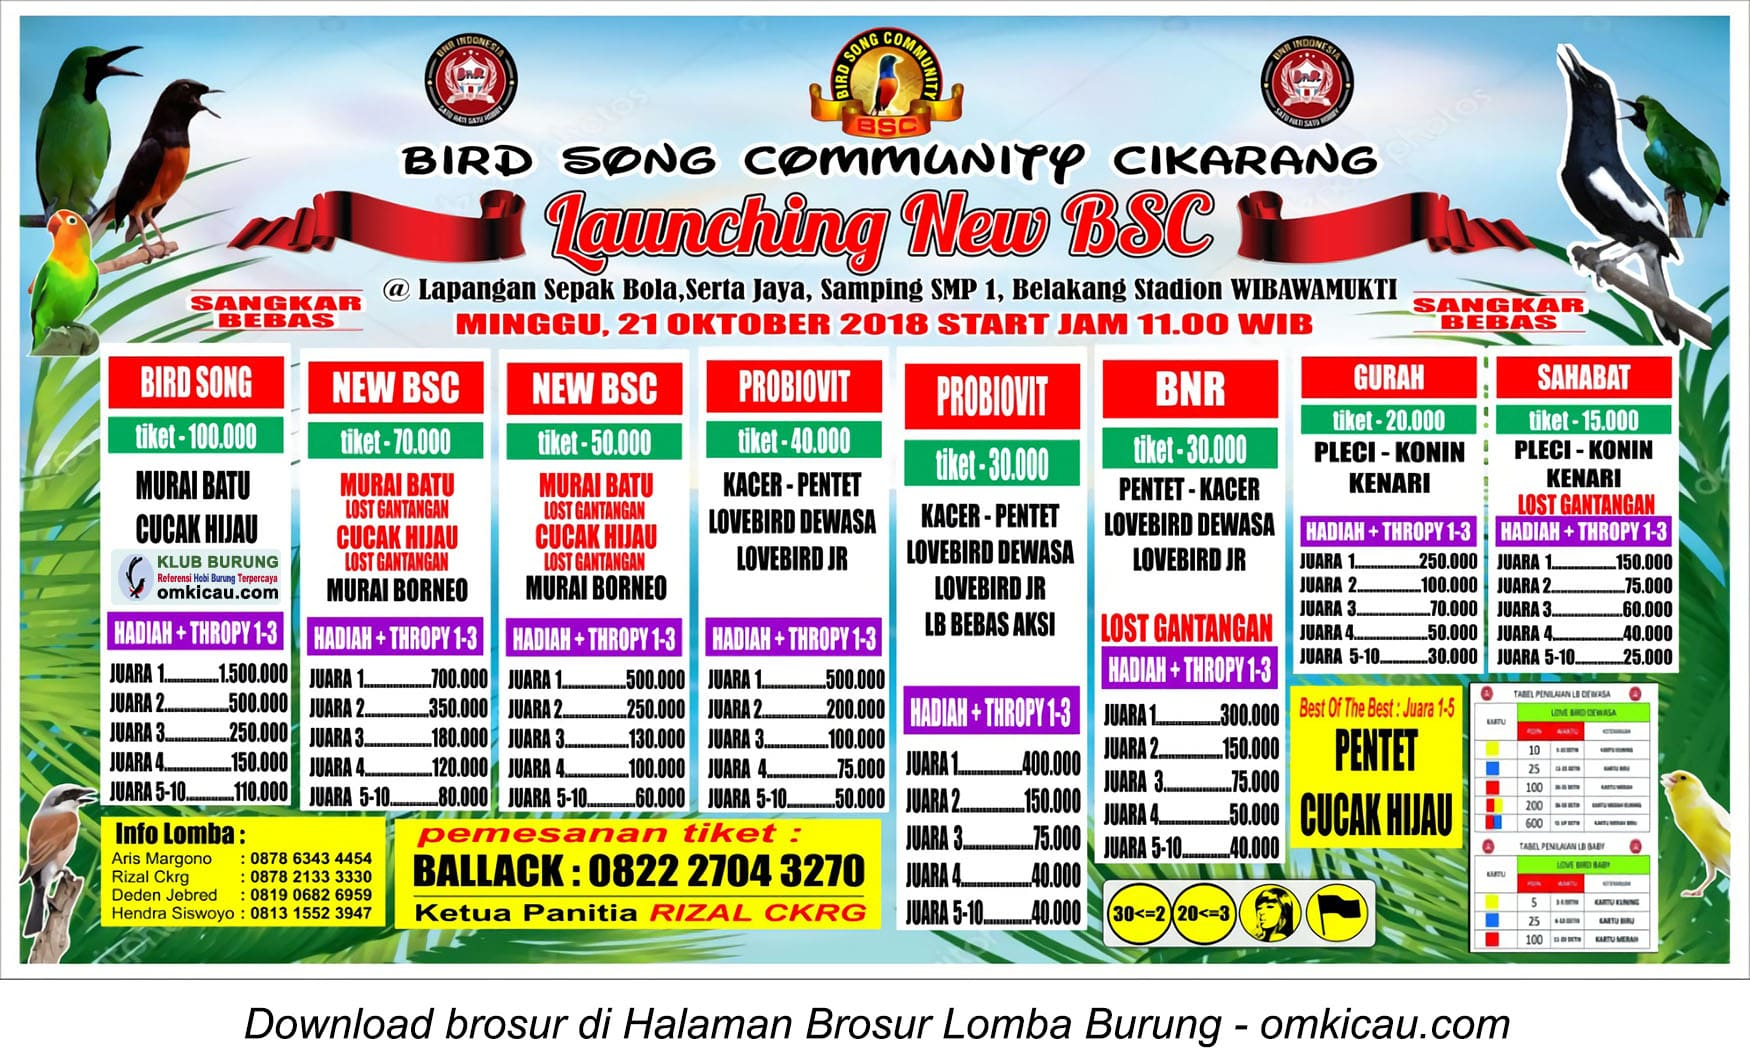 Launching New BSC